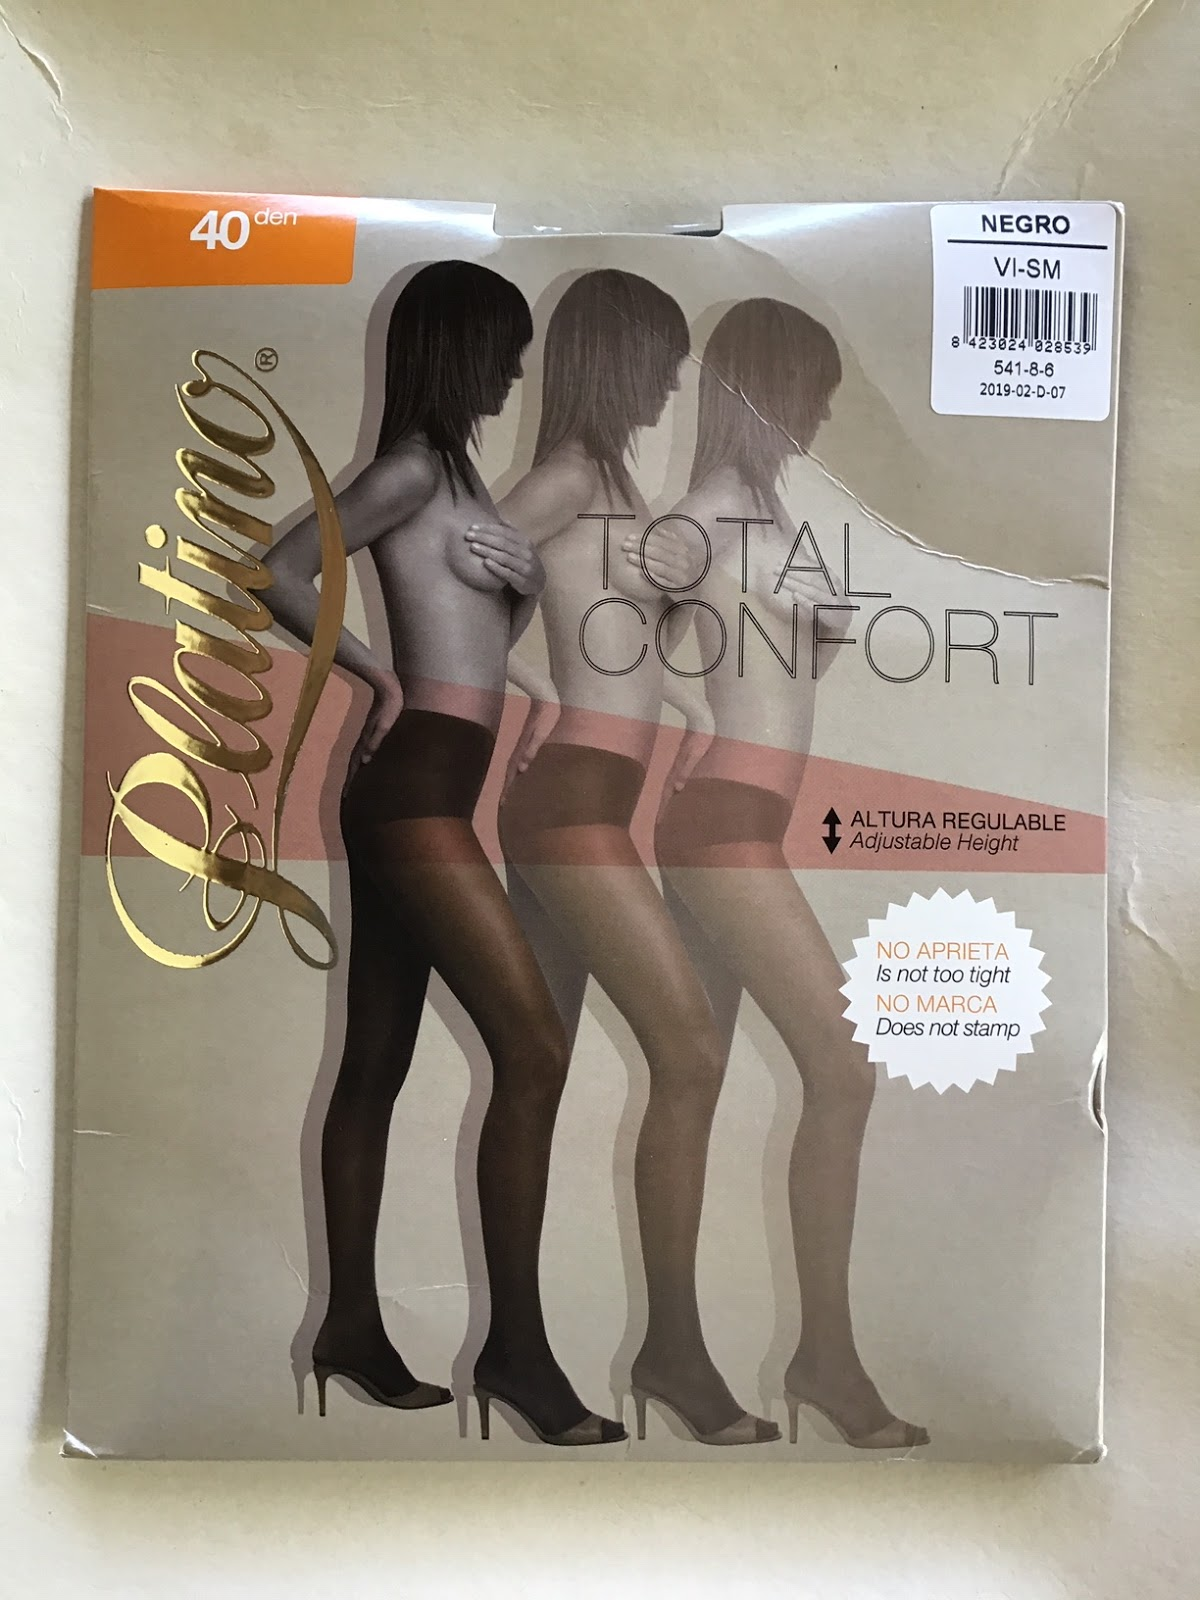 ef9da6ec7df The first product are the Platino 40 Denier Total Confort Tights.